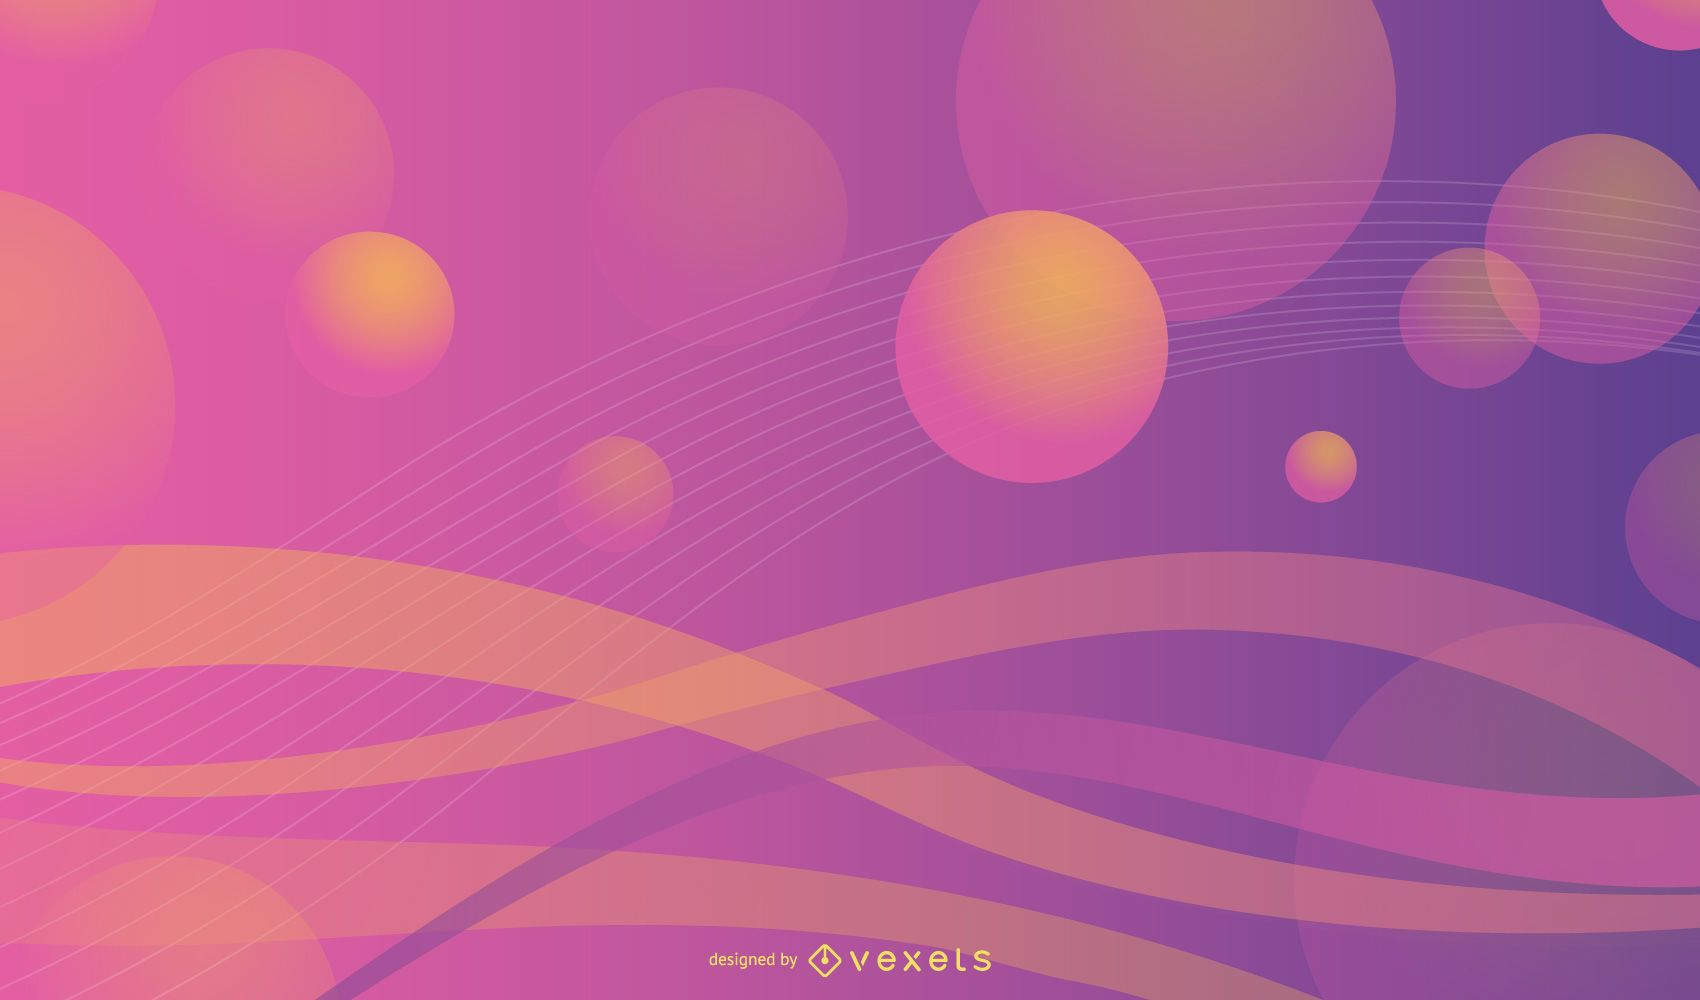 Dynamic backdrop with waves and 3D circles